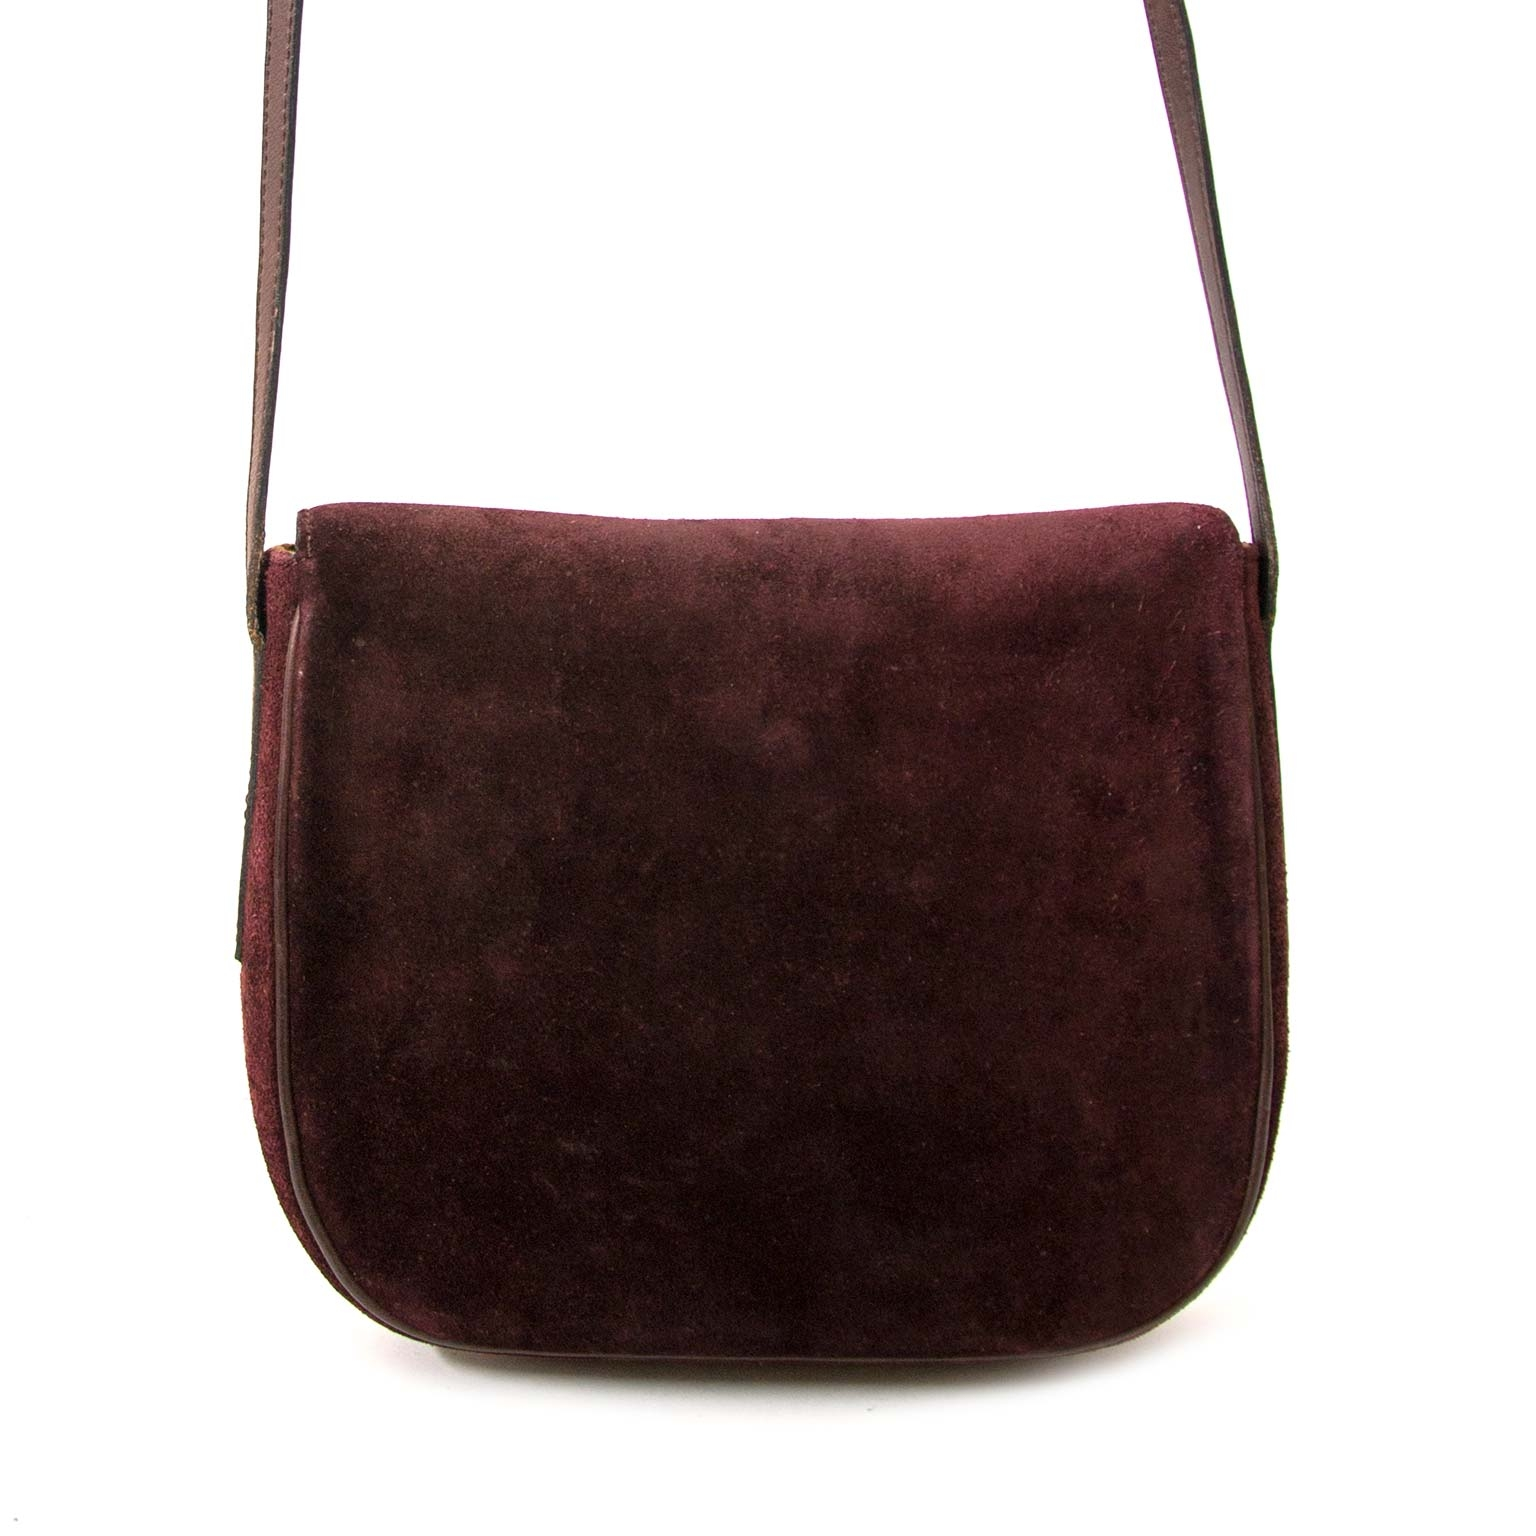 Delvaux Suede Cross Body Bag for sale online